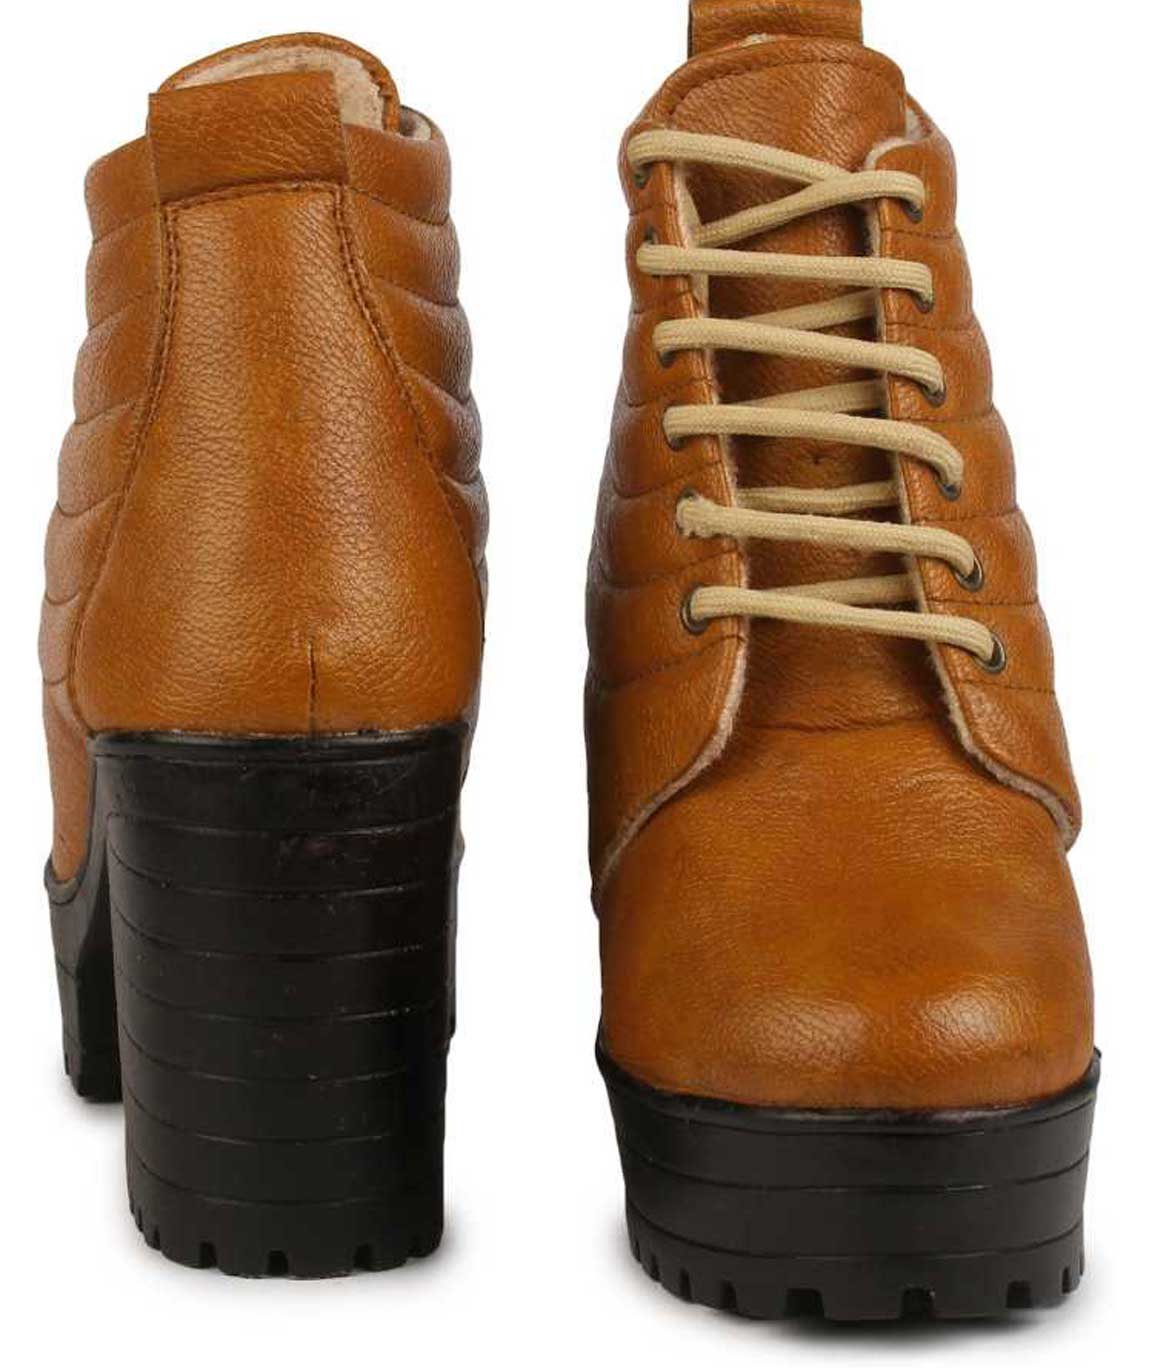 TAN BOOT FOR WOMEN